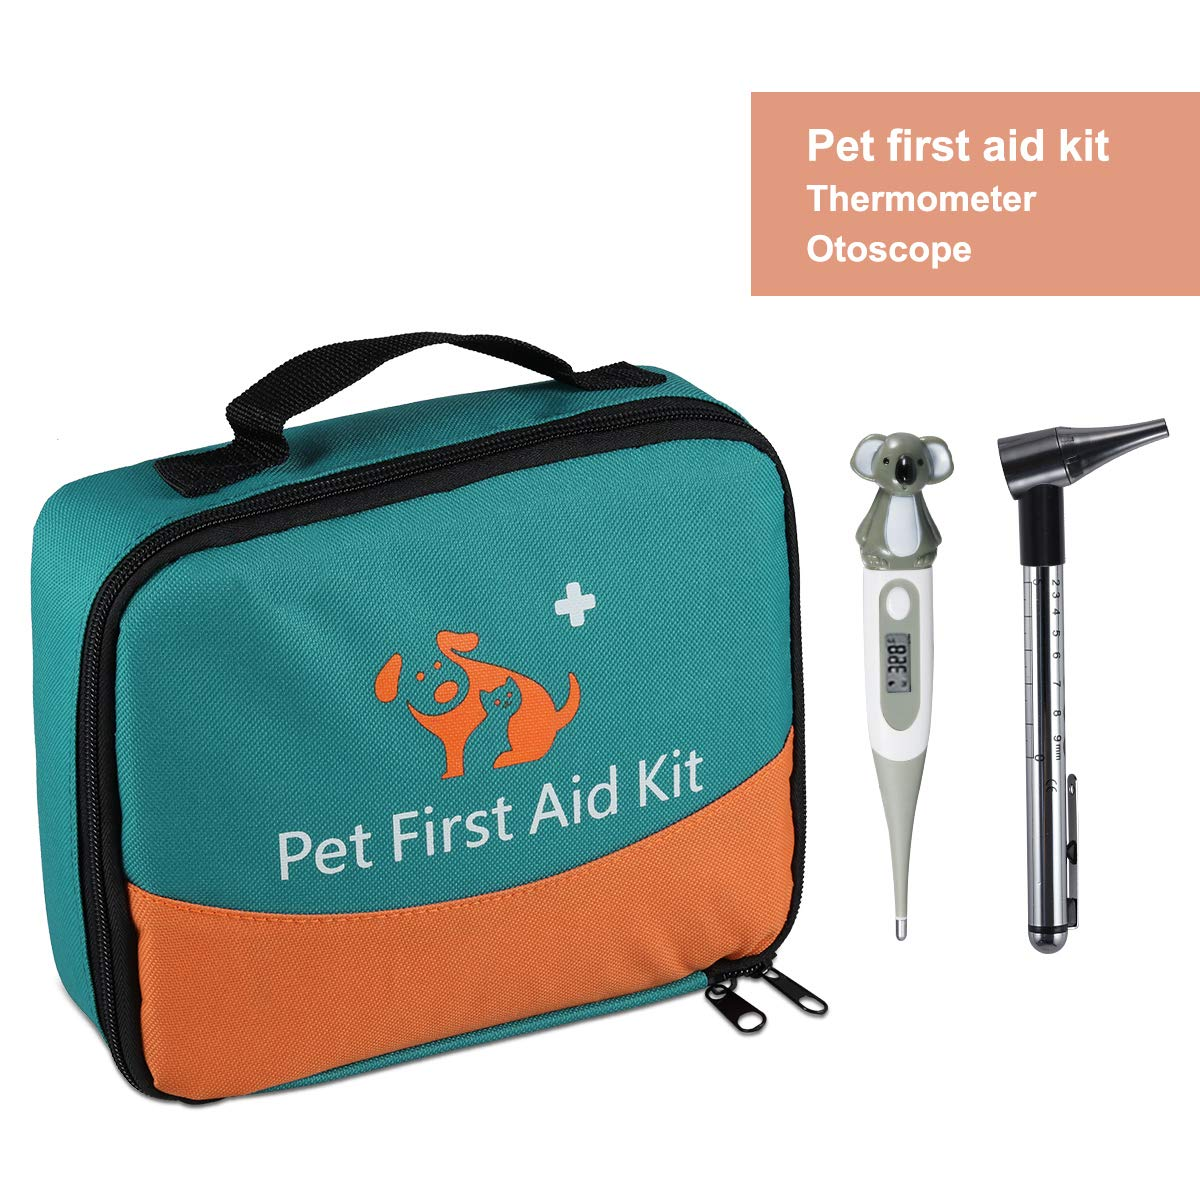 ONETWOTHREE Pet First Aid Kit for Dog, Cat, Rabbit and Other Animal,with Thermometer, Syringe, Otoscope, Perfect for Home Care and Outdoor Travel Emergencies by ONETWOTHREE